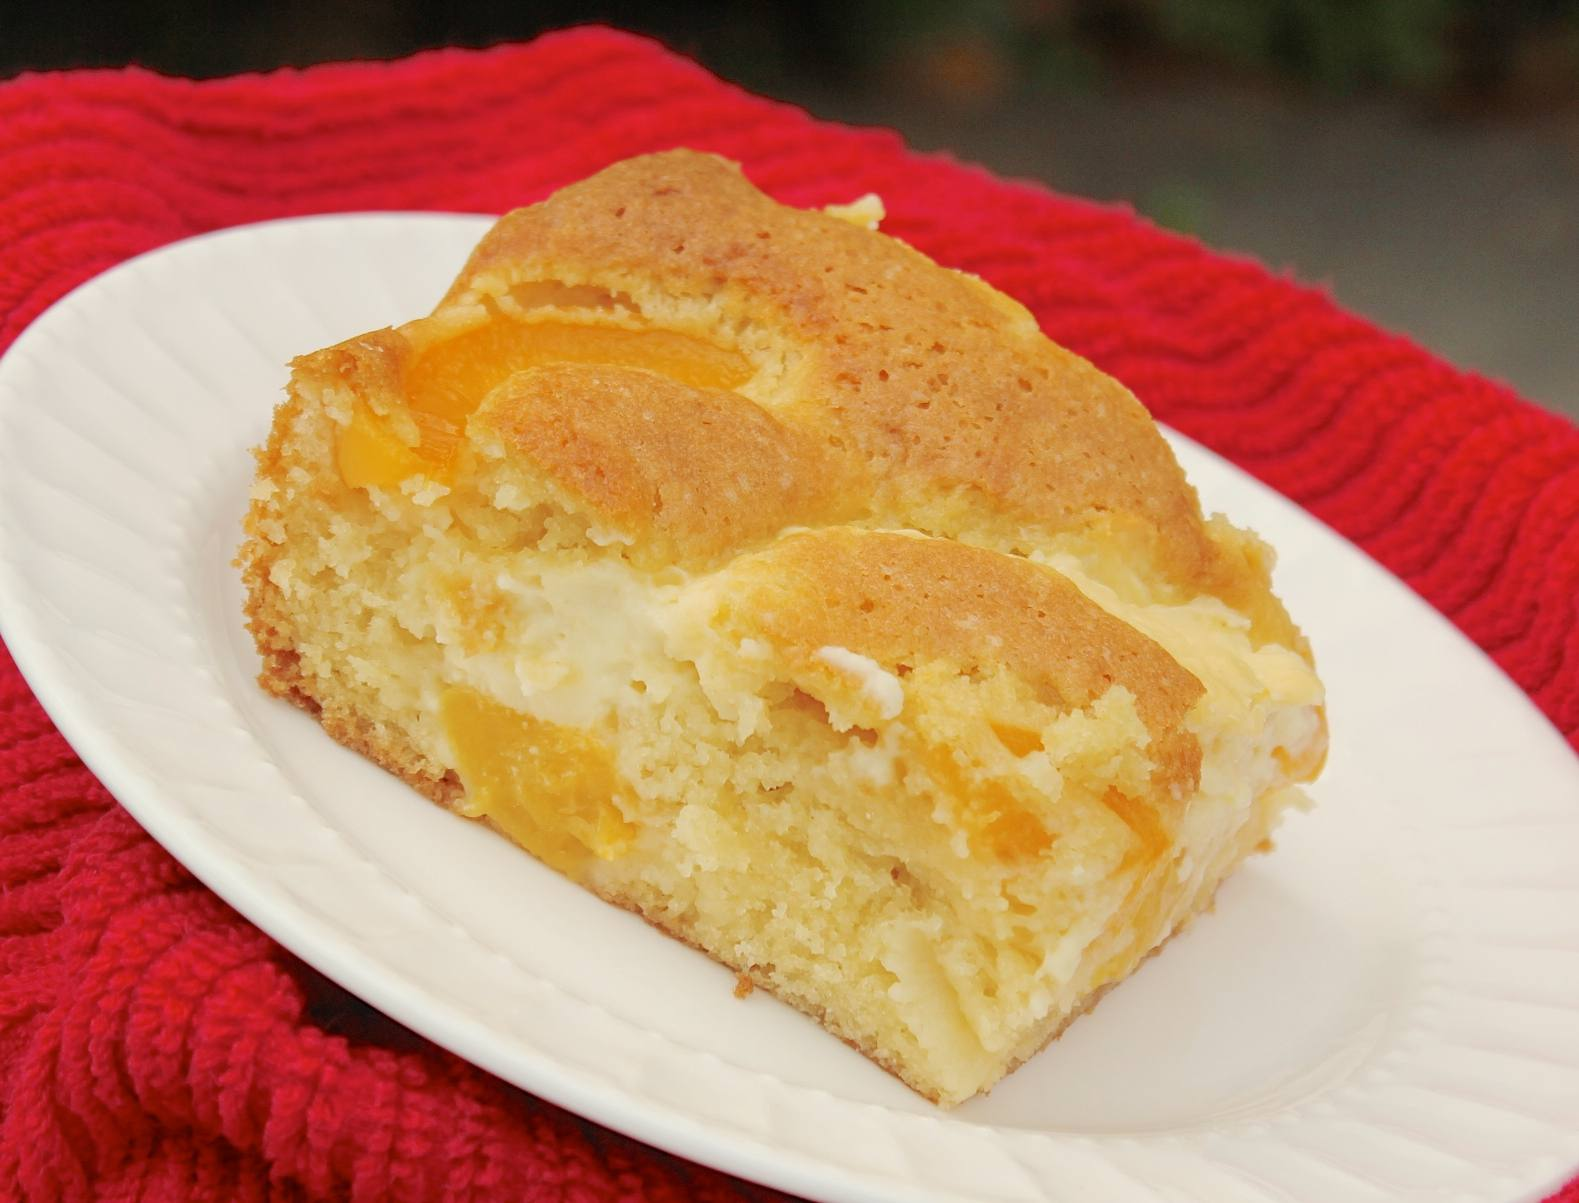 Peach pudding cake on a plate